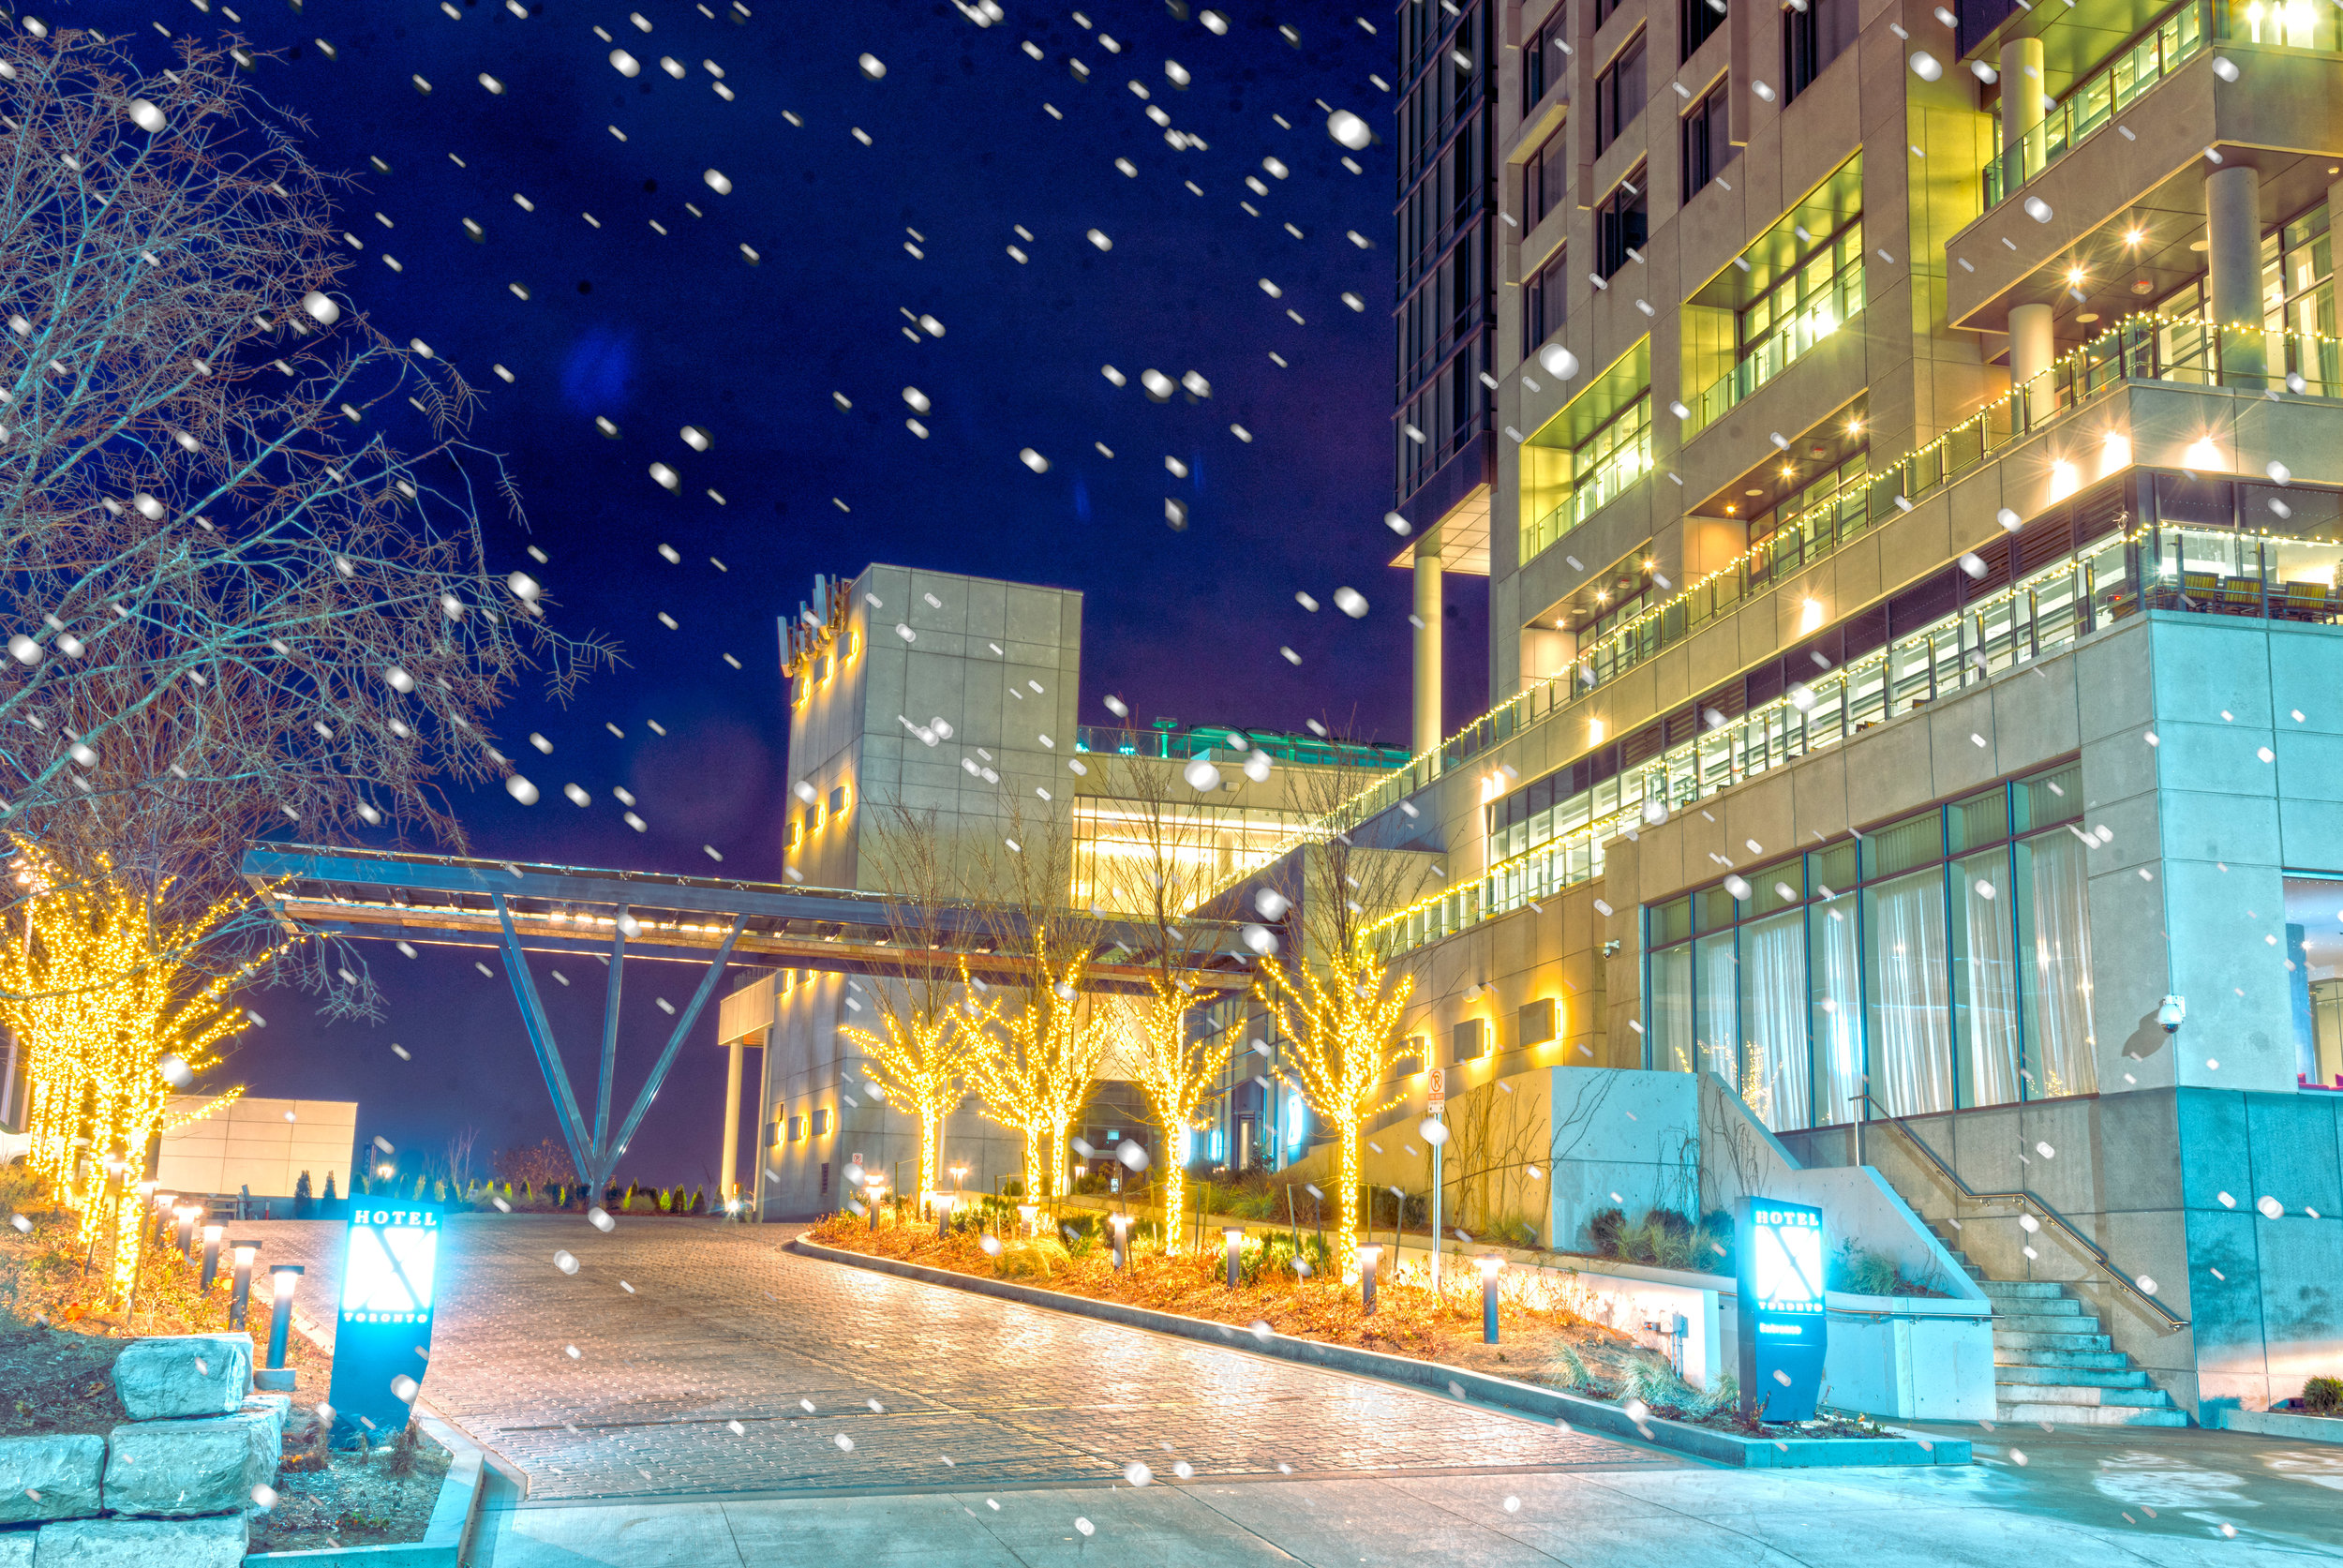 Hotel X HDR with snow